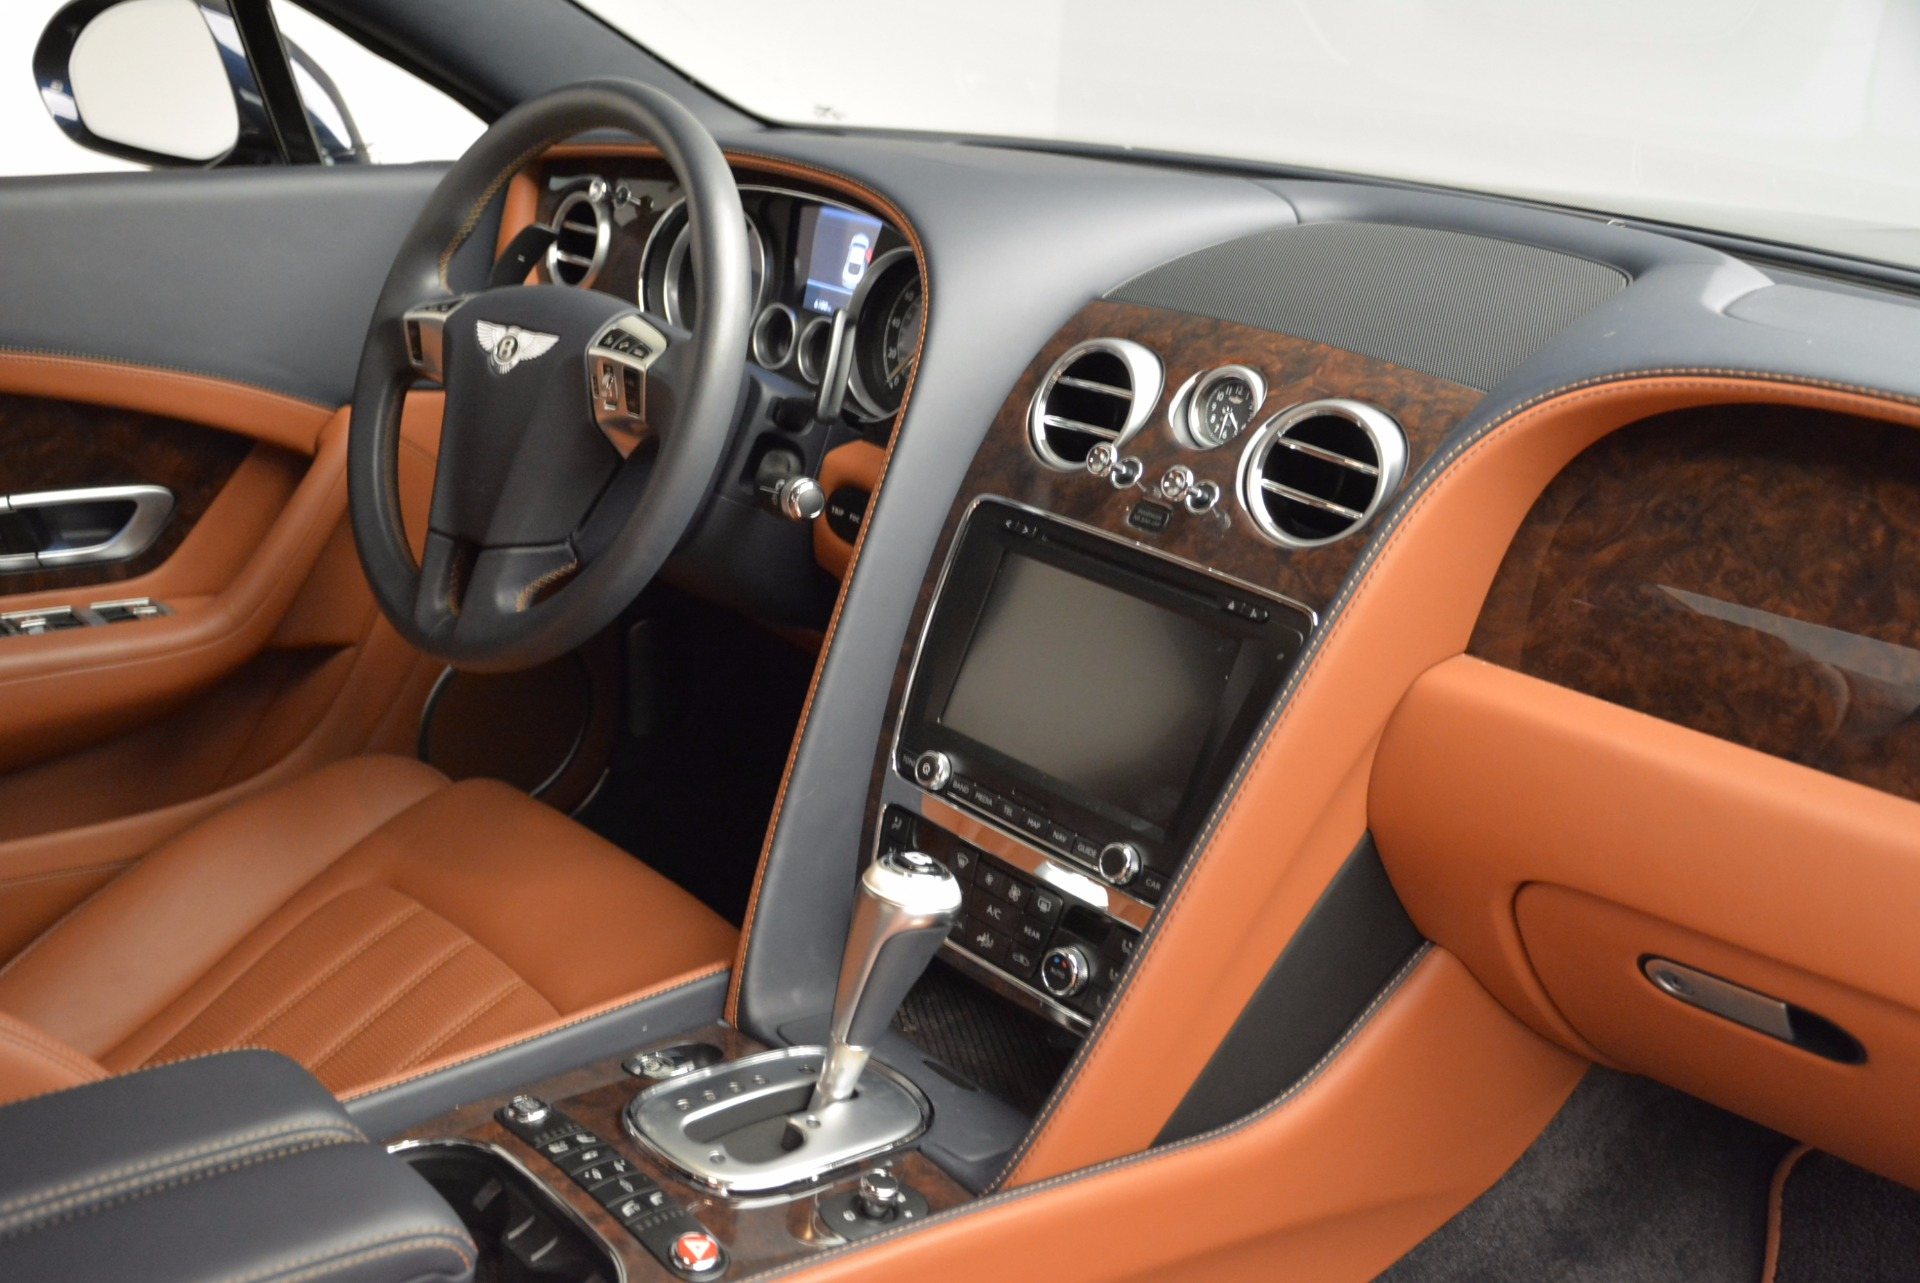 Used 2014 Bentley Continental GT W12 For Sale In Westport, CT 1845_p34